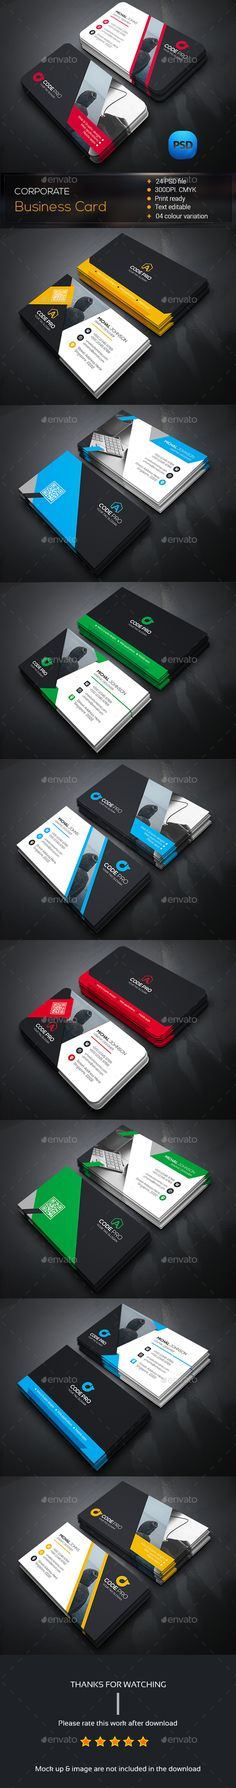 Personal Business Card Bundle — Photoshop PSD #pack #print • Available here → https://graphicriver.net/item/personal-business-card-bundle/14576815?ref=pxcr